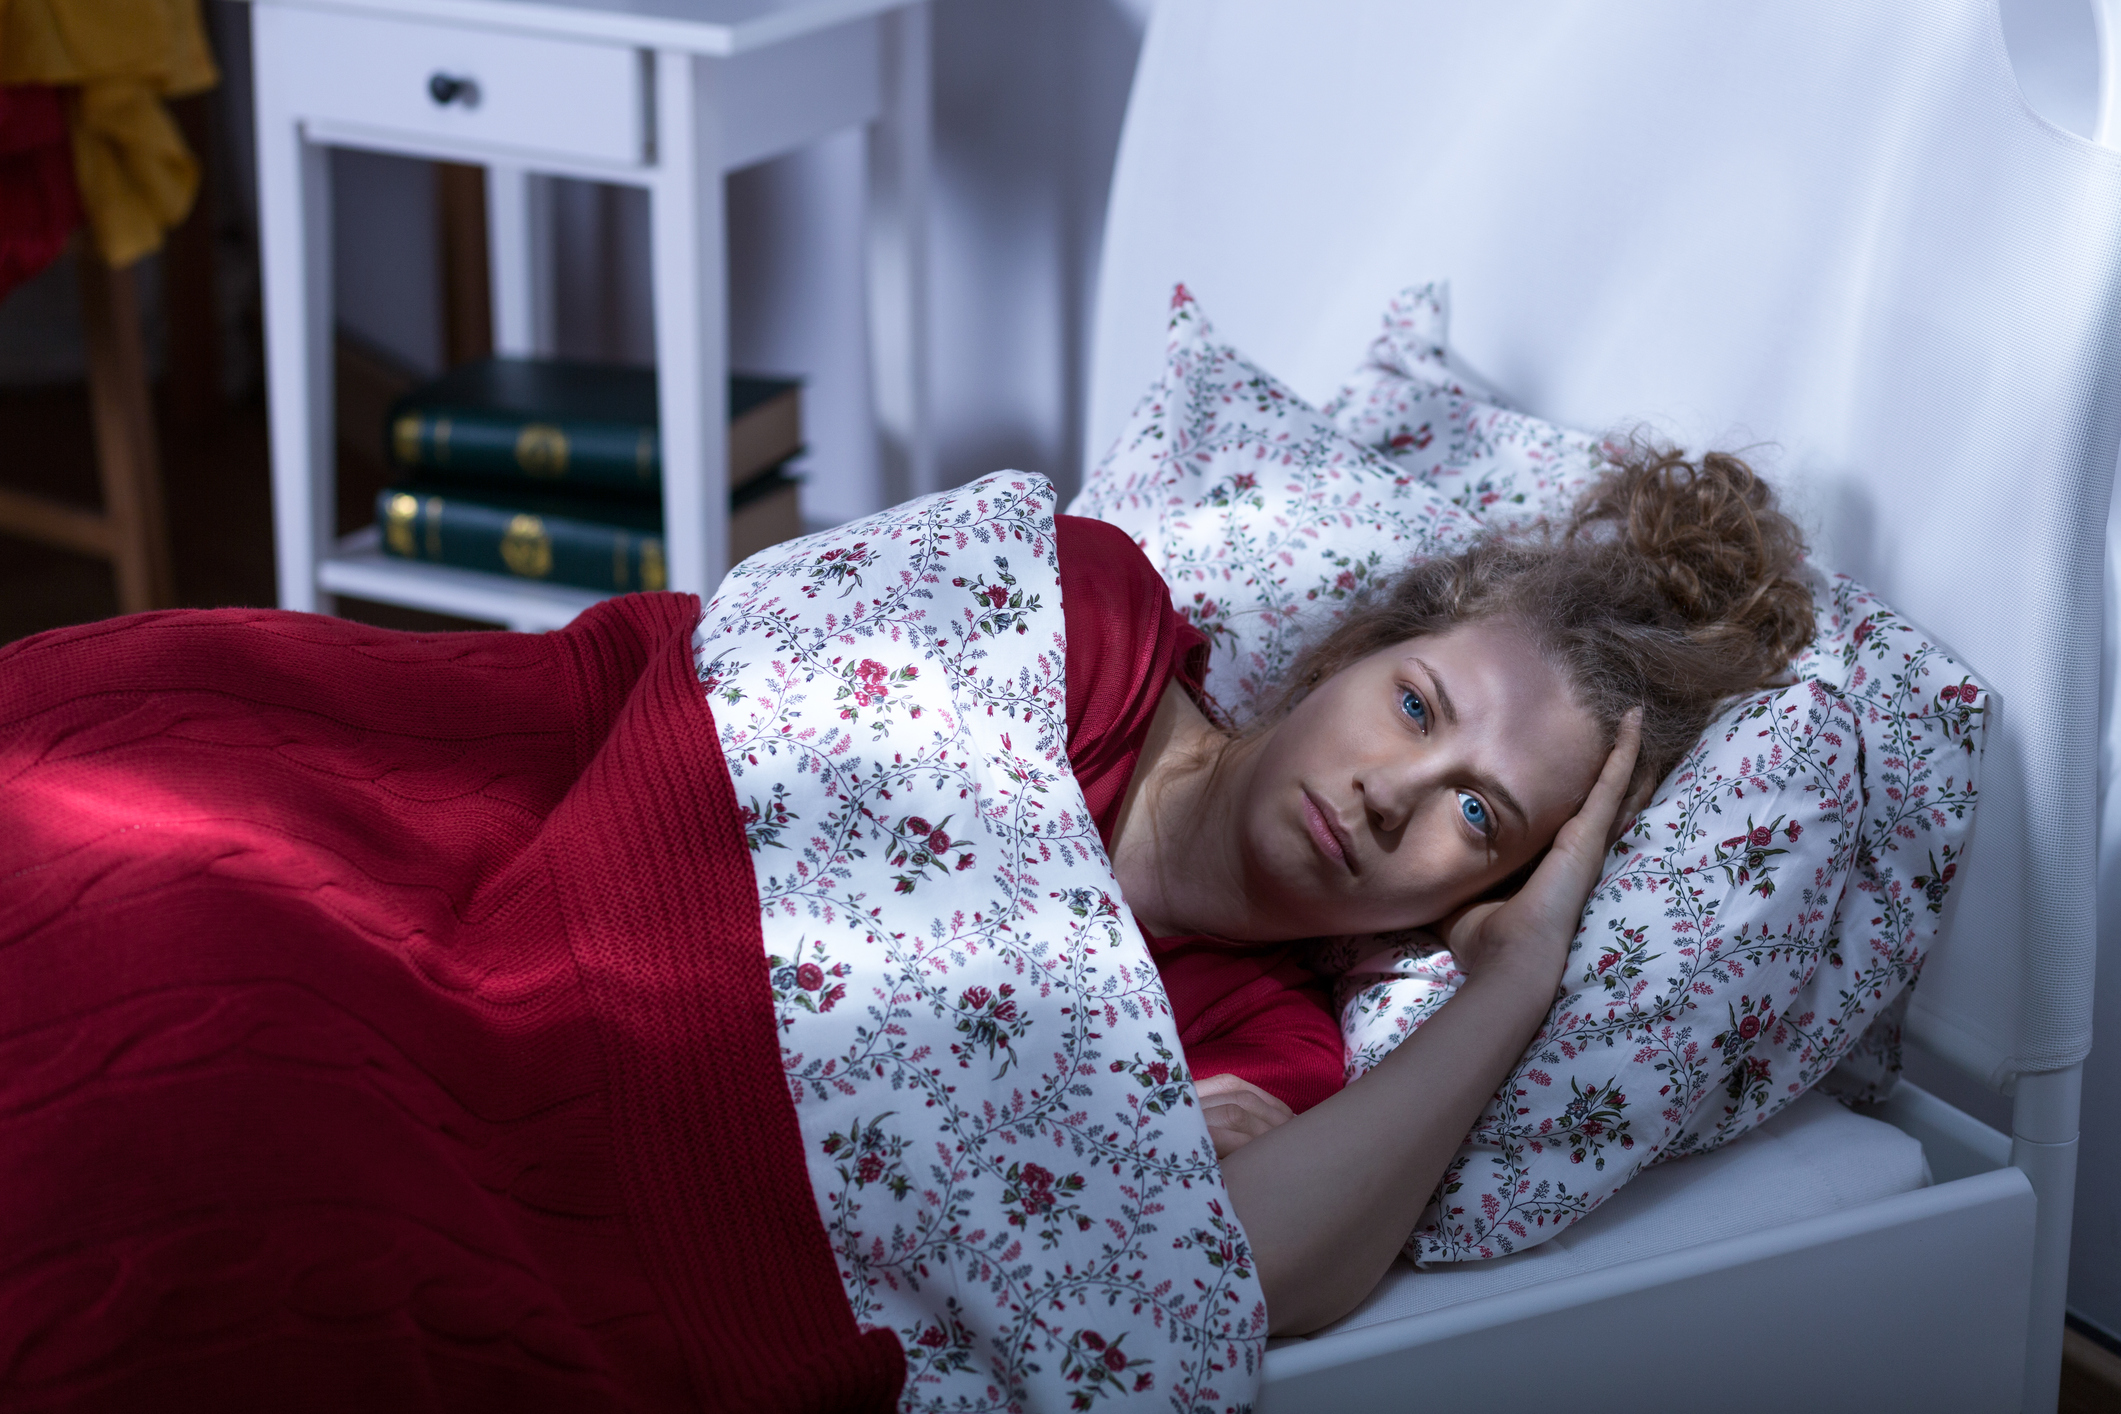 In fibromyalgia, poor sleep quality can lead to sexual problems in women